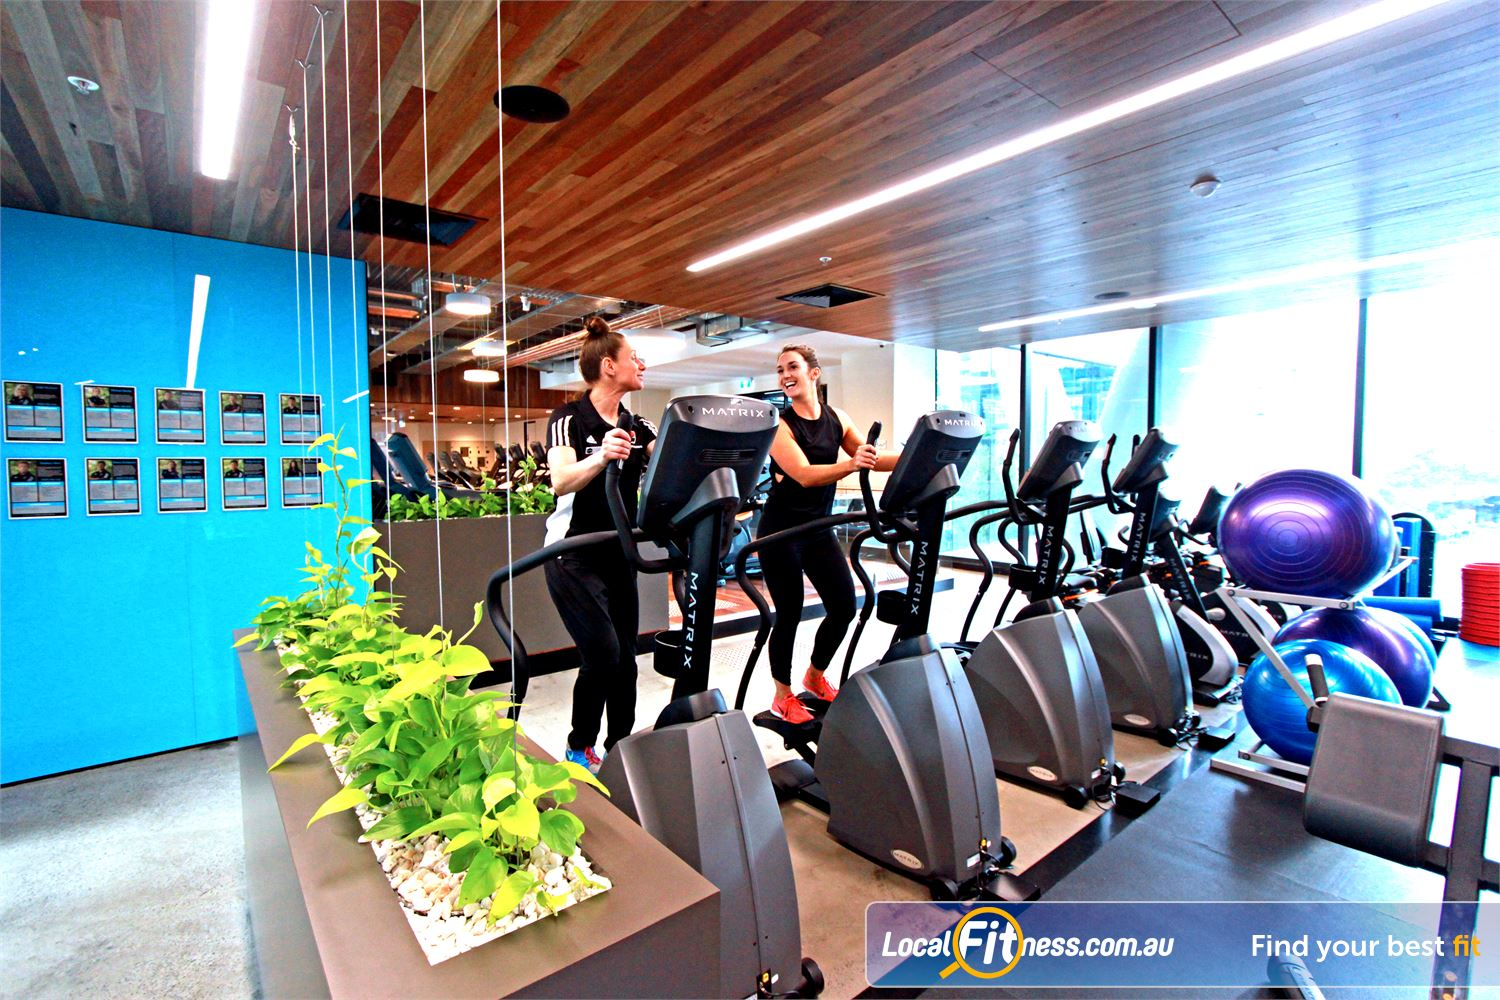 Goodlife Health Clubs Docklands 24 hour Docklands gym access is perfect for corporates, commuters and inner-city residents.